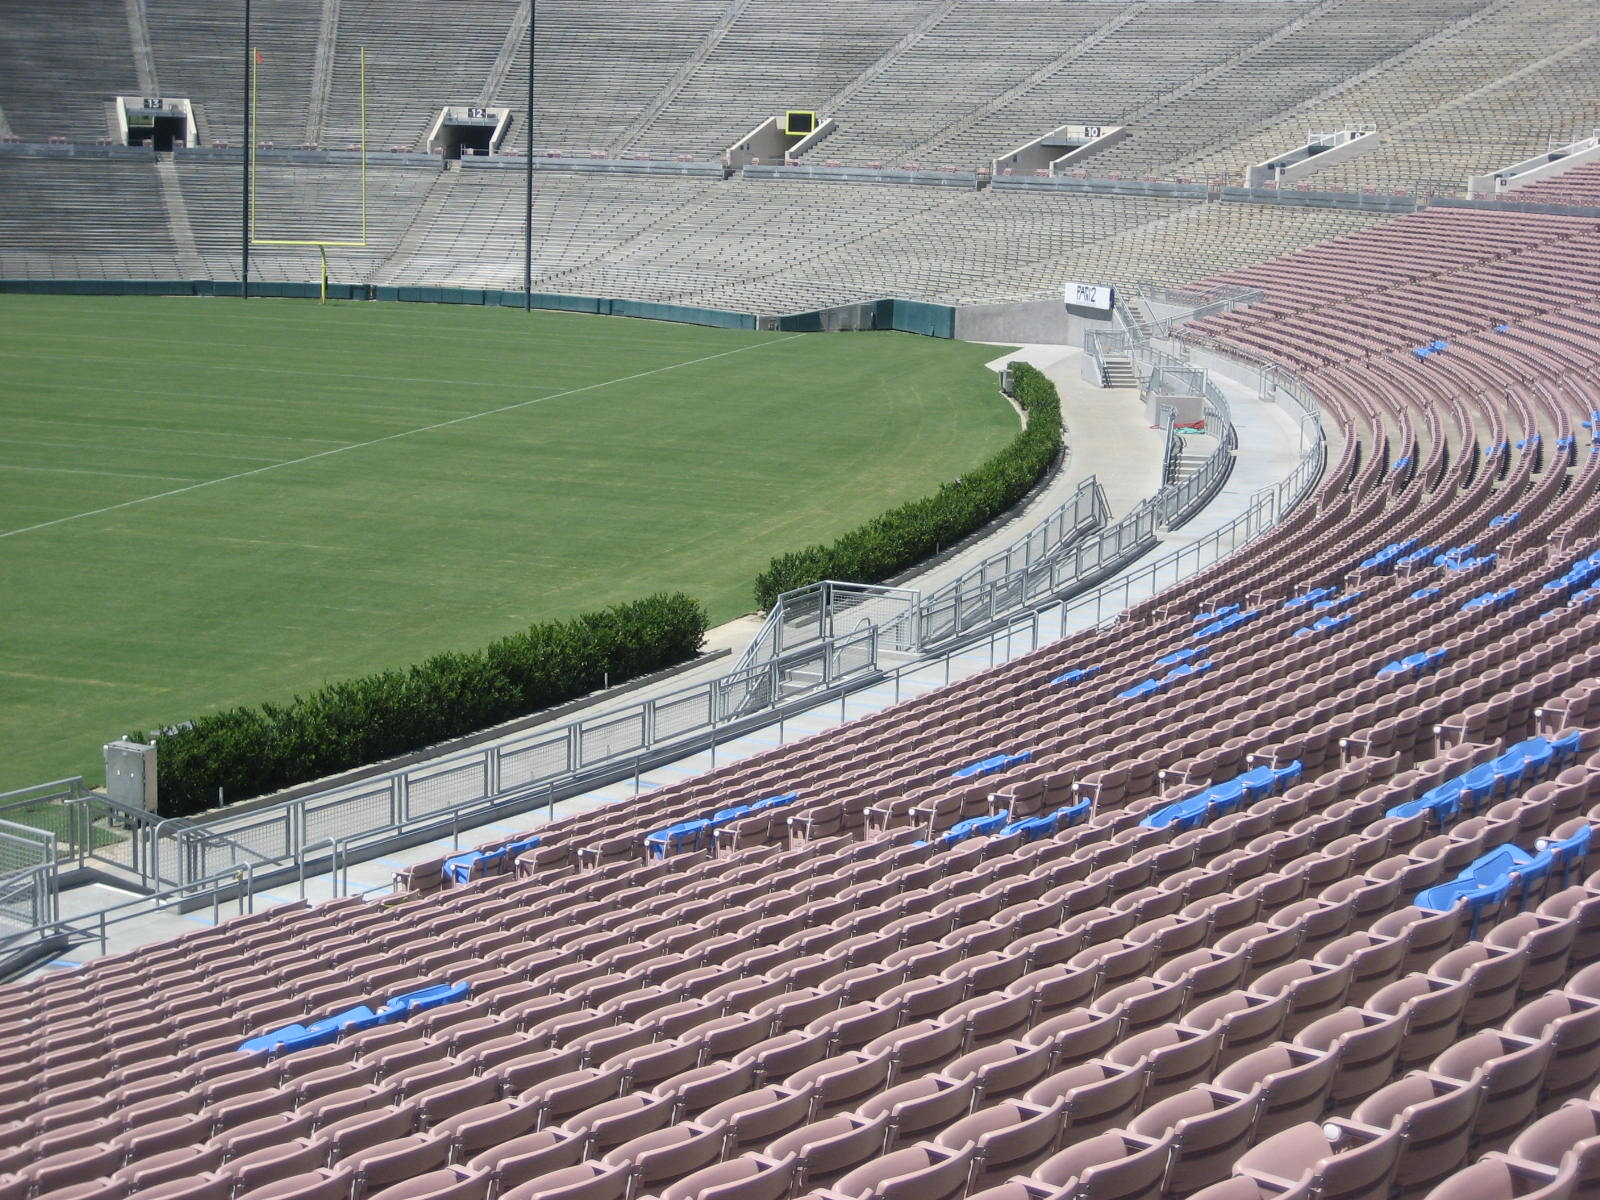 rose bowl stadium (ucla) seating guide - rateyourseats